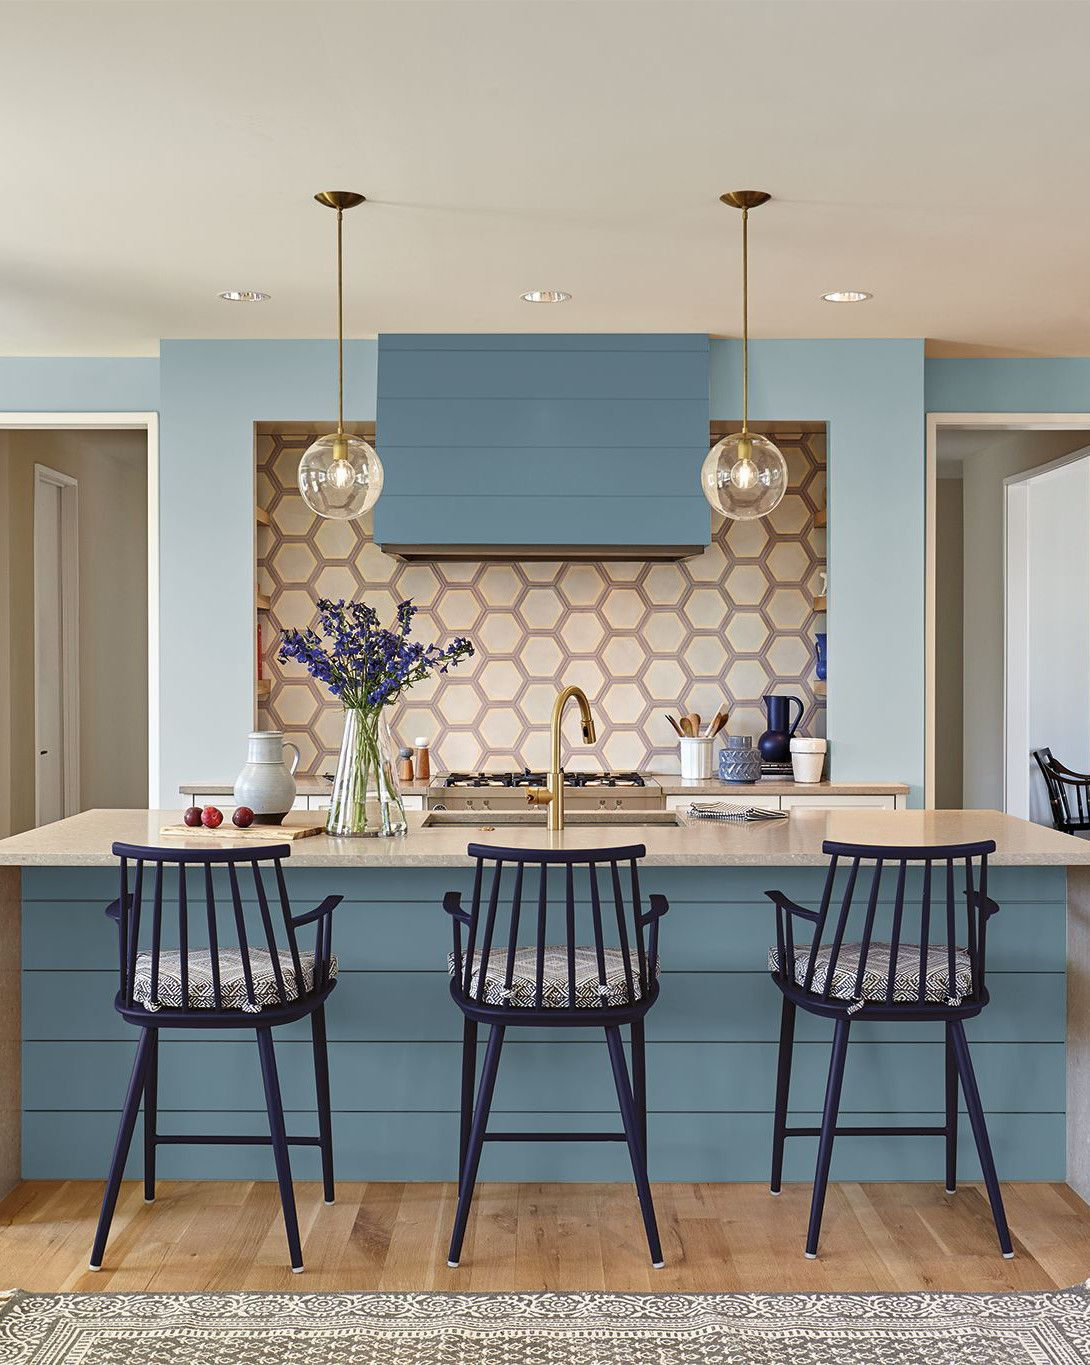 Behr S 2019 Color Of The Year Is Perfect For Just About Every Room In Your House Kitchen Colors Trending Paint Colors Behr Colors